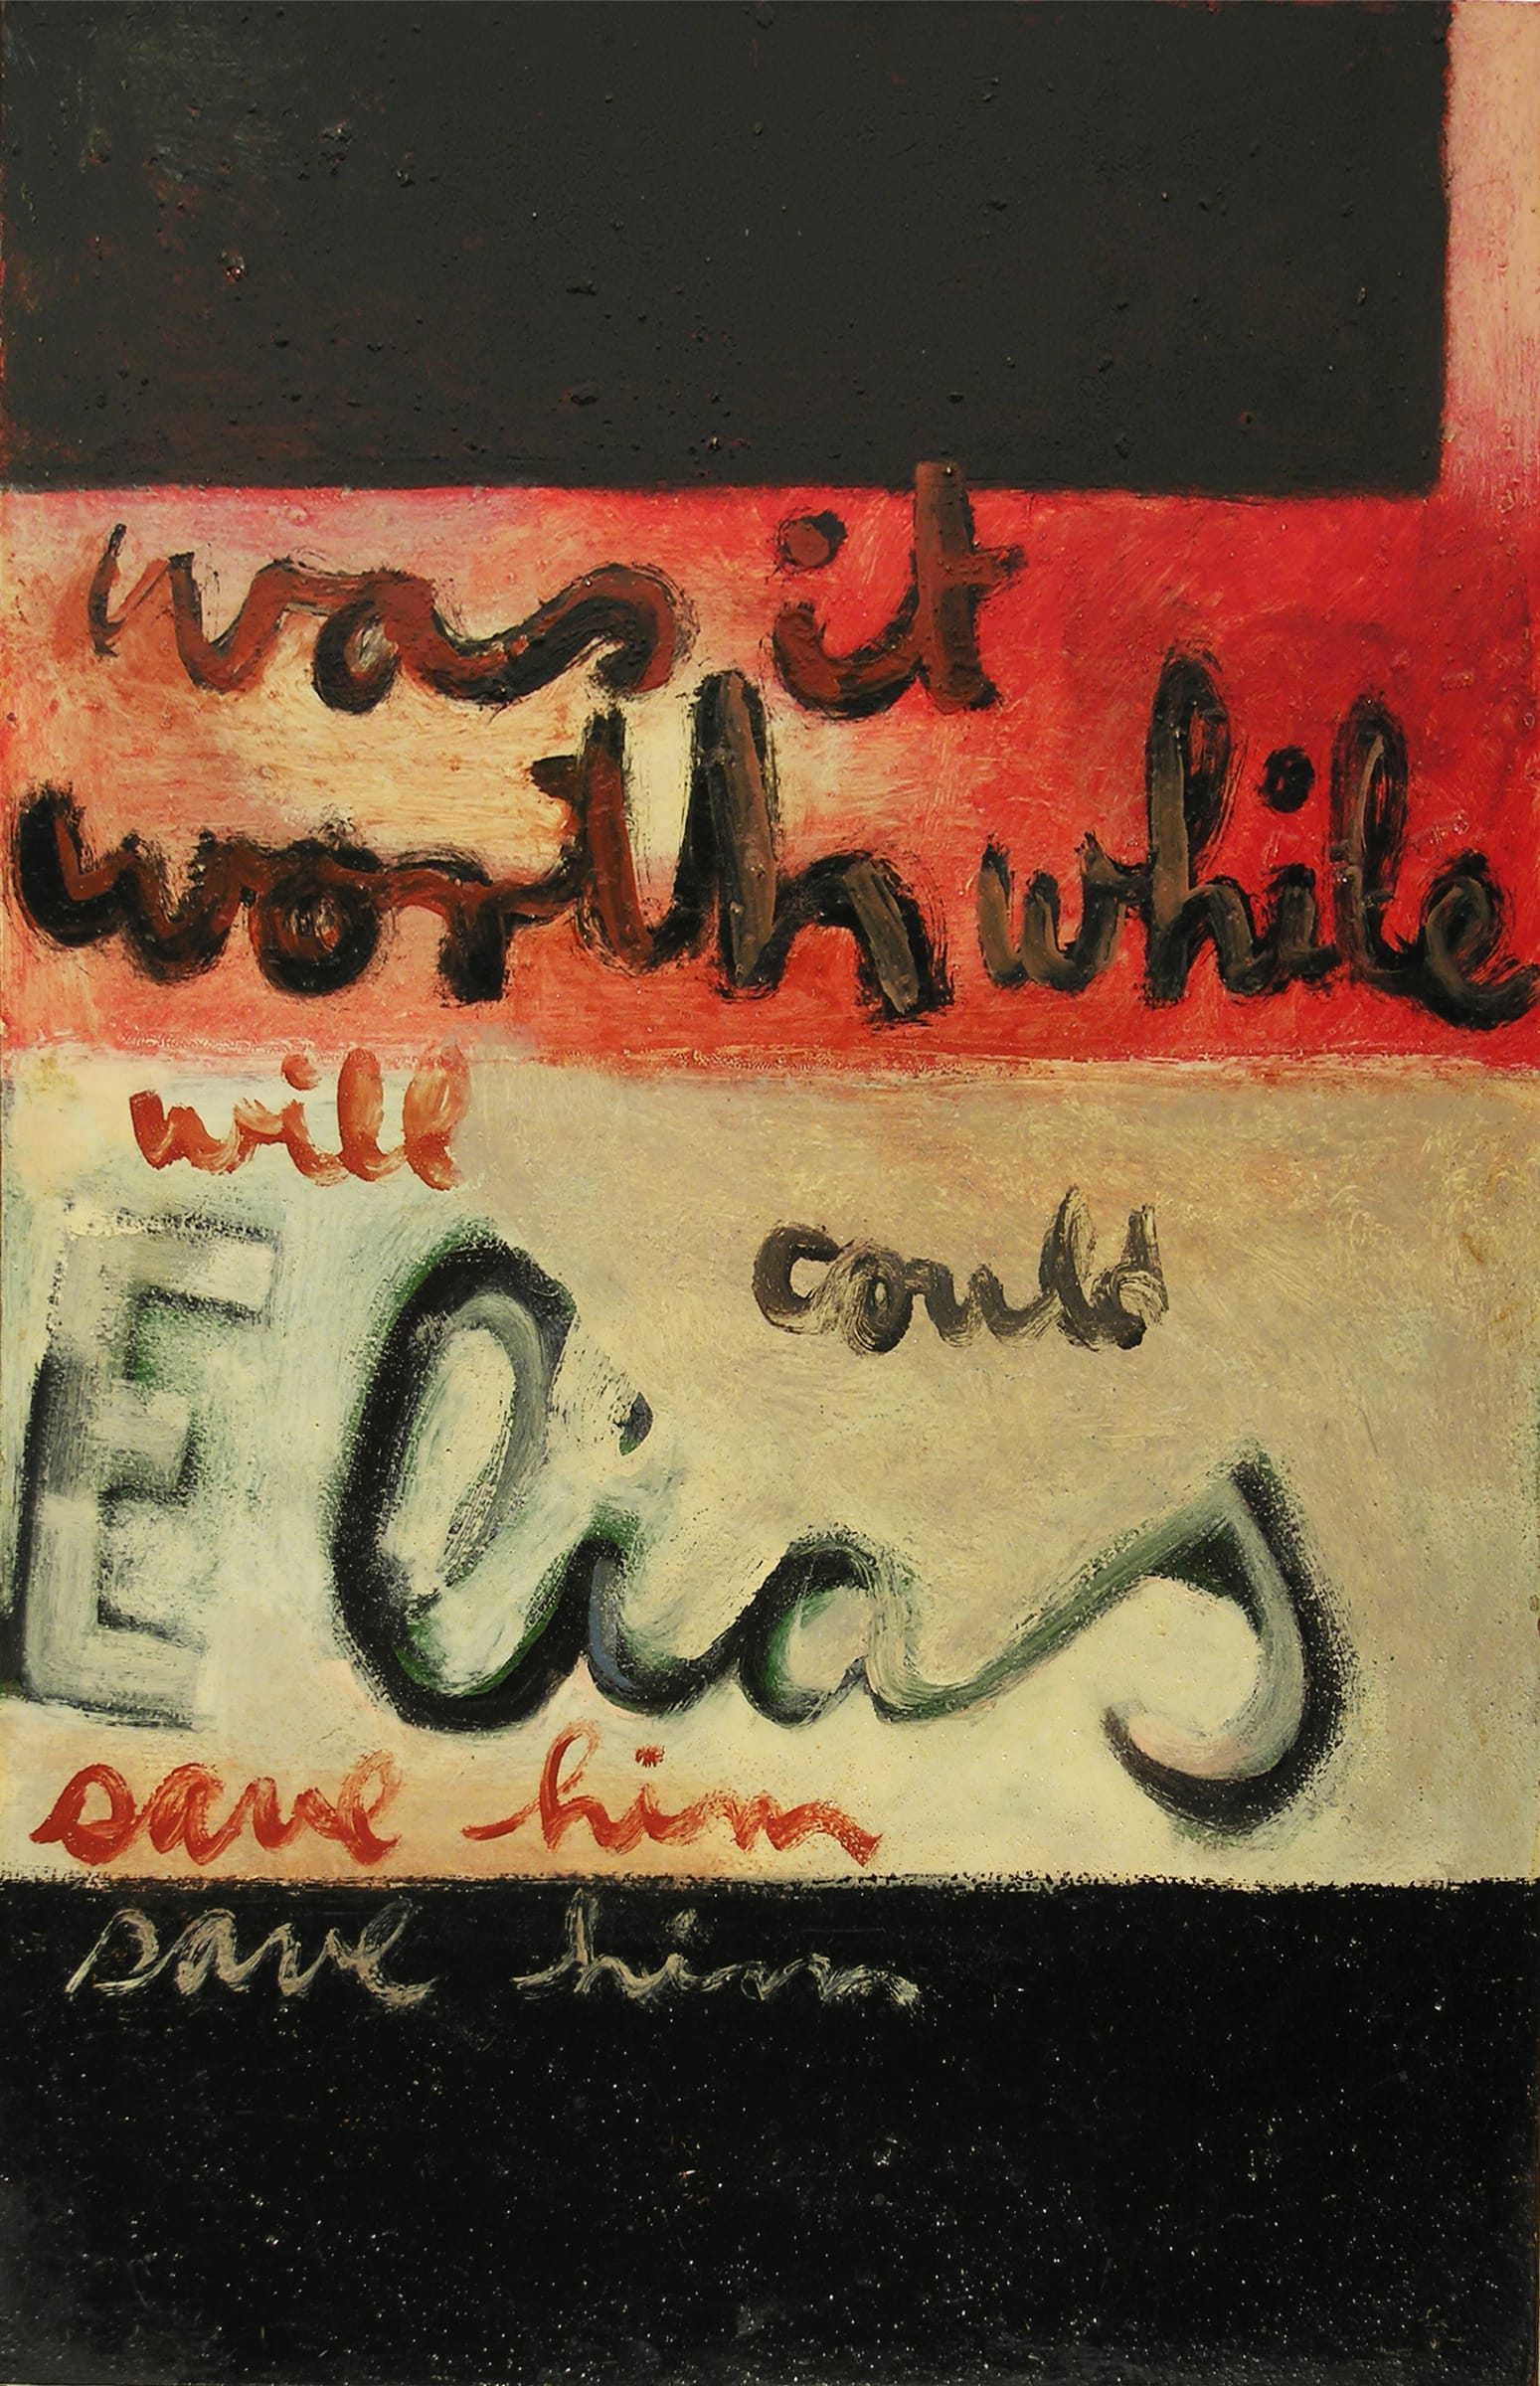 <span class=&#34;link fancybox-details-link&#34;><a href=&#34;/artists/89-colin-mccahon/works/2863-colin-mccahon-was-it-worth-while-elias-series-1959/&#34;>View Detail Page</a></span><div class=&#34;artist&#34;><strong>Colin McCAHON</strong></div> <div class=&#34;title&#34;><em>Was It Worth While (Elias Series)</em>, 1959</div> <div class=&#34;signed_and_dated&#34;>Signed, dated and titled verso</div> <div class=&#34;medium&#34;>Enamel on hardboard</div> <div class=&#34;dimensions&#34;>26.5 x 17.3 in<br />67.2 x 44 cm</div>